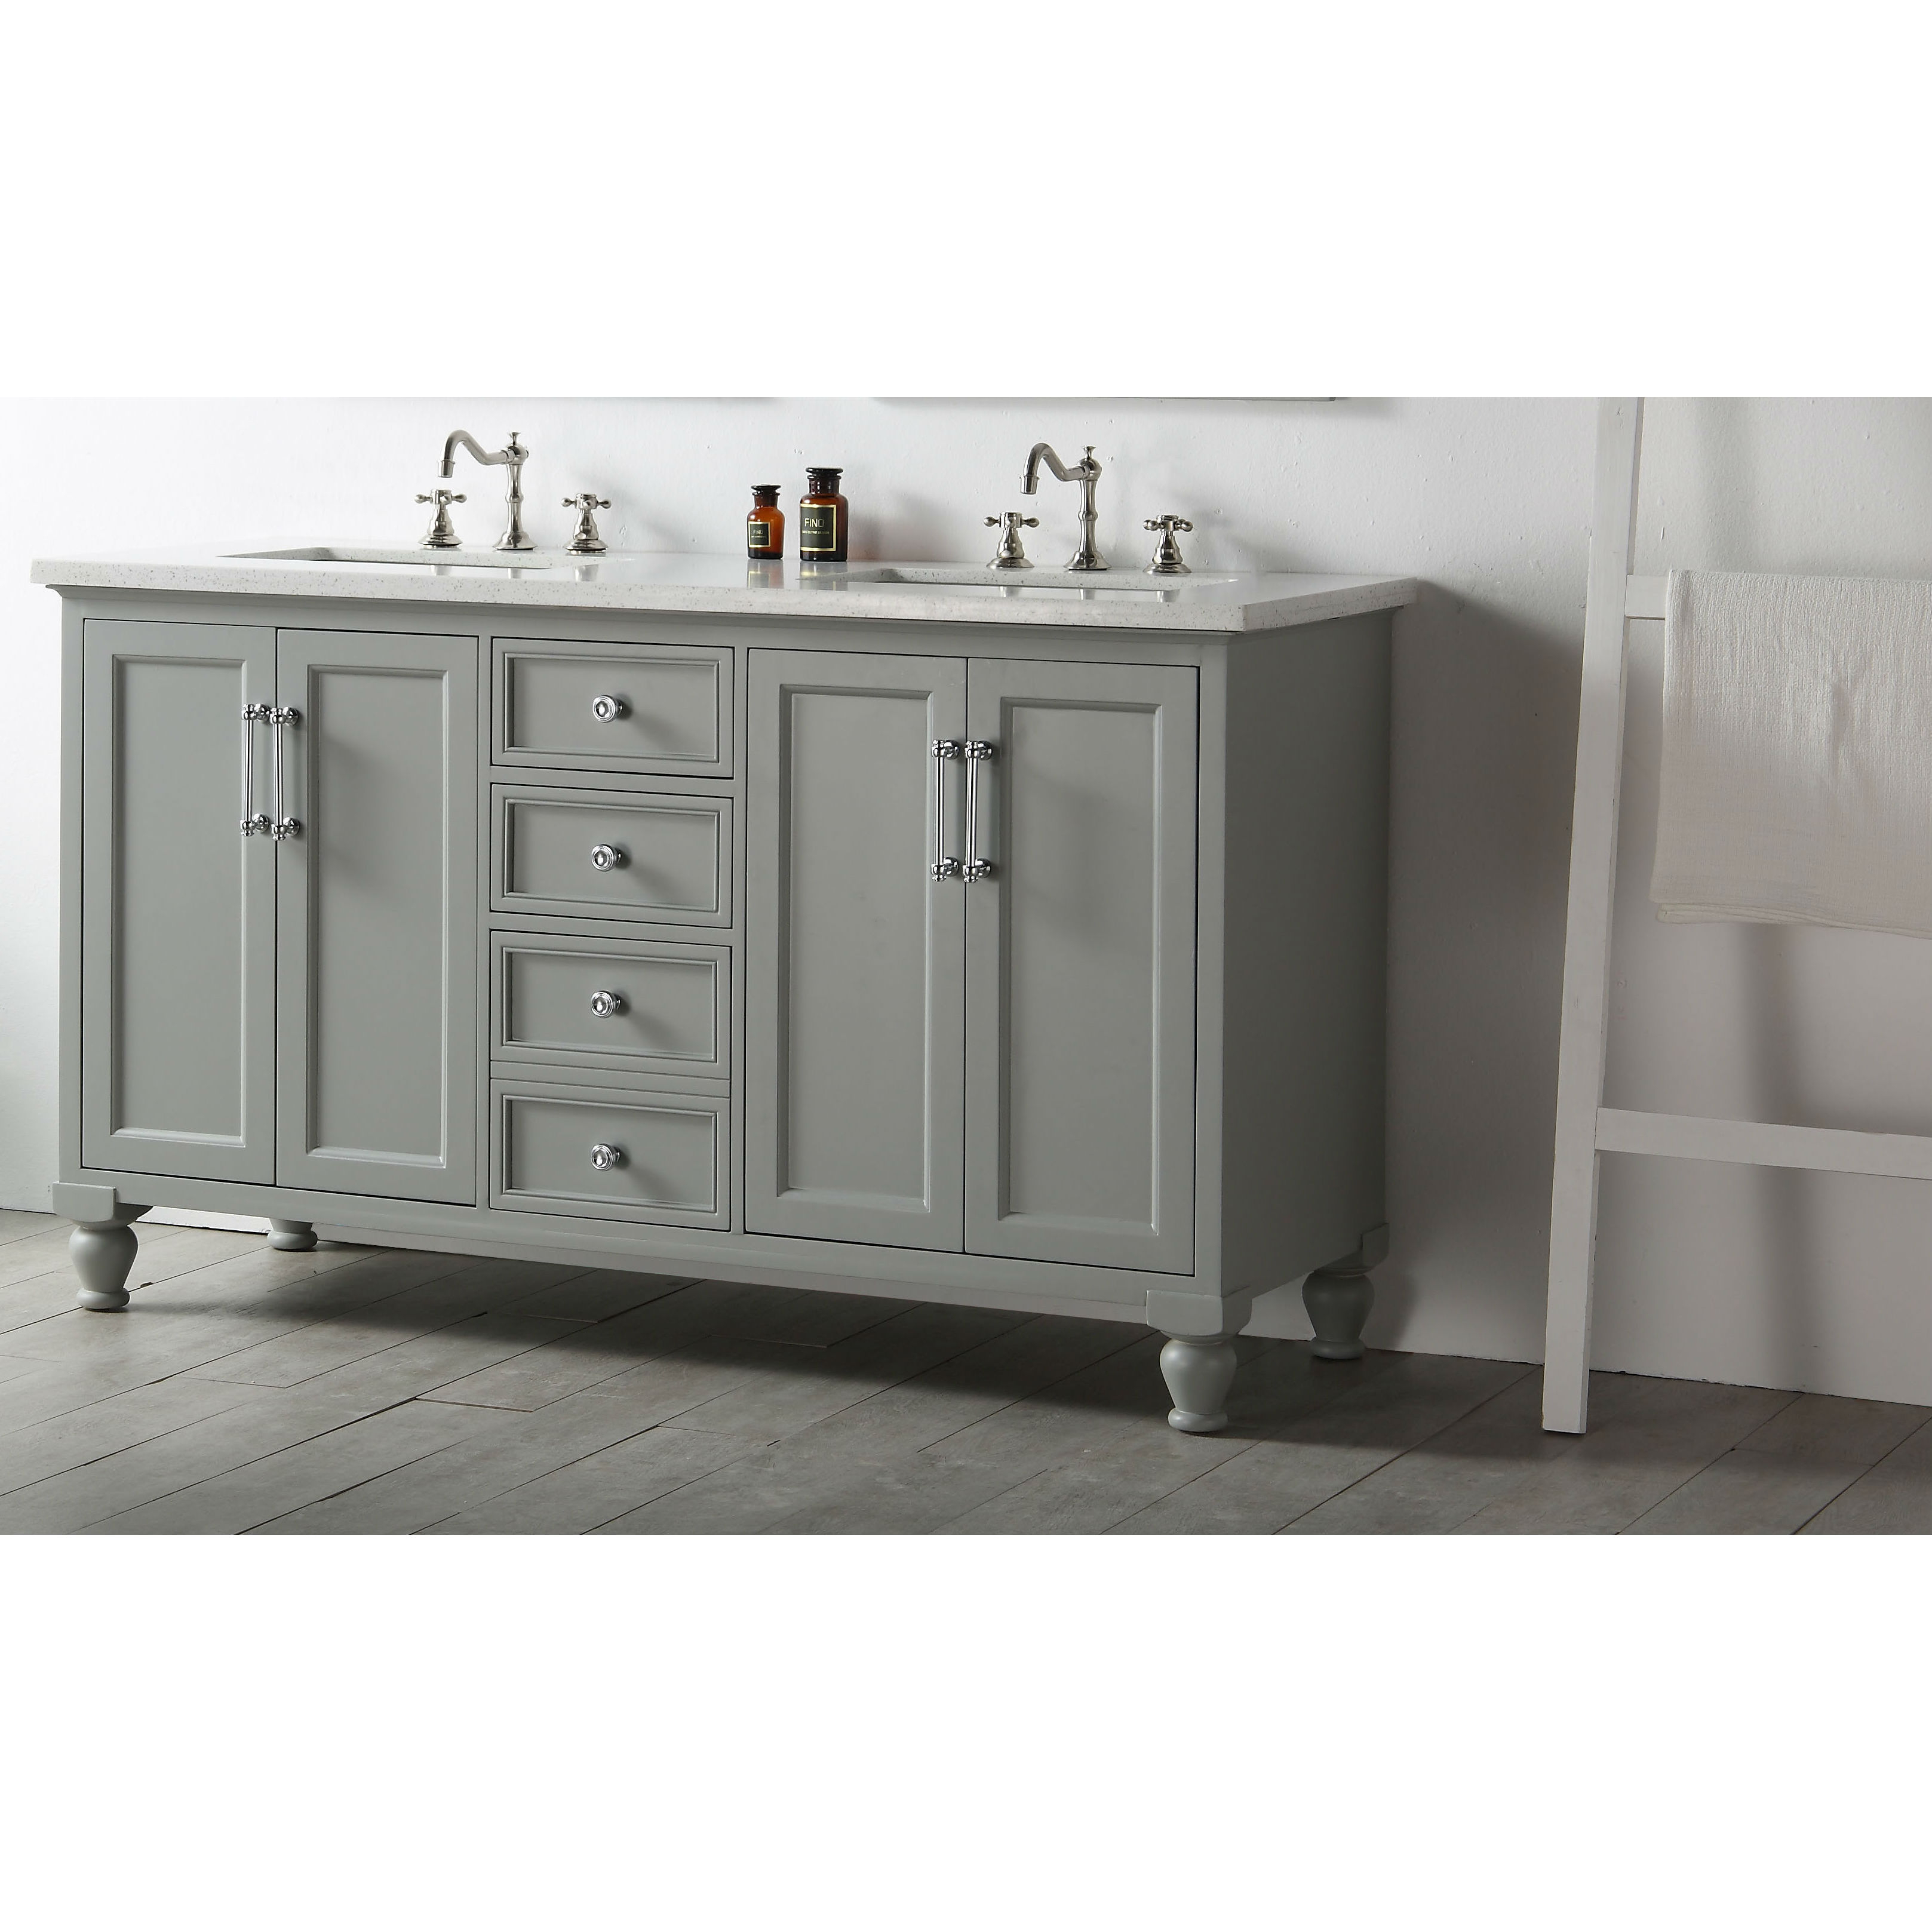 Drop Dead Gorgeous Bathroom Vanity Furniture Style Grey within Arminta Wood Sideboards (Image 9 of 30)